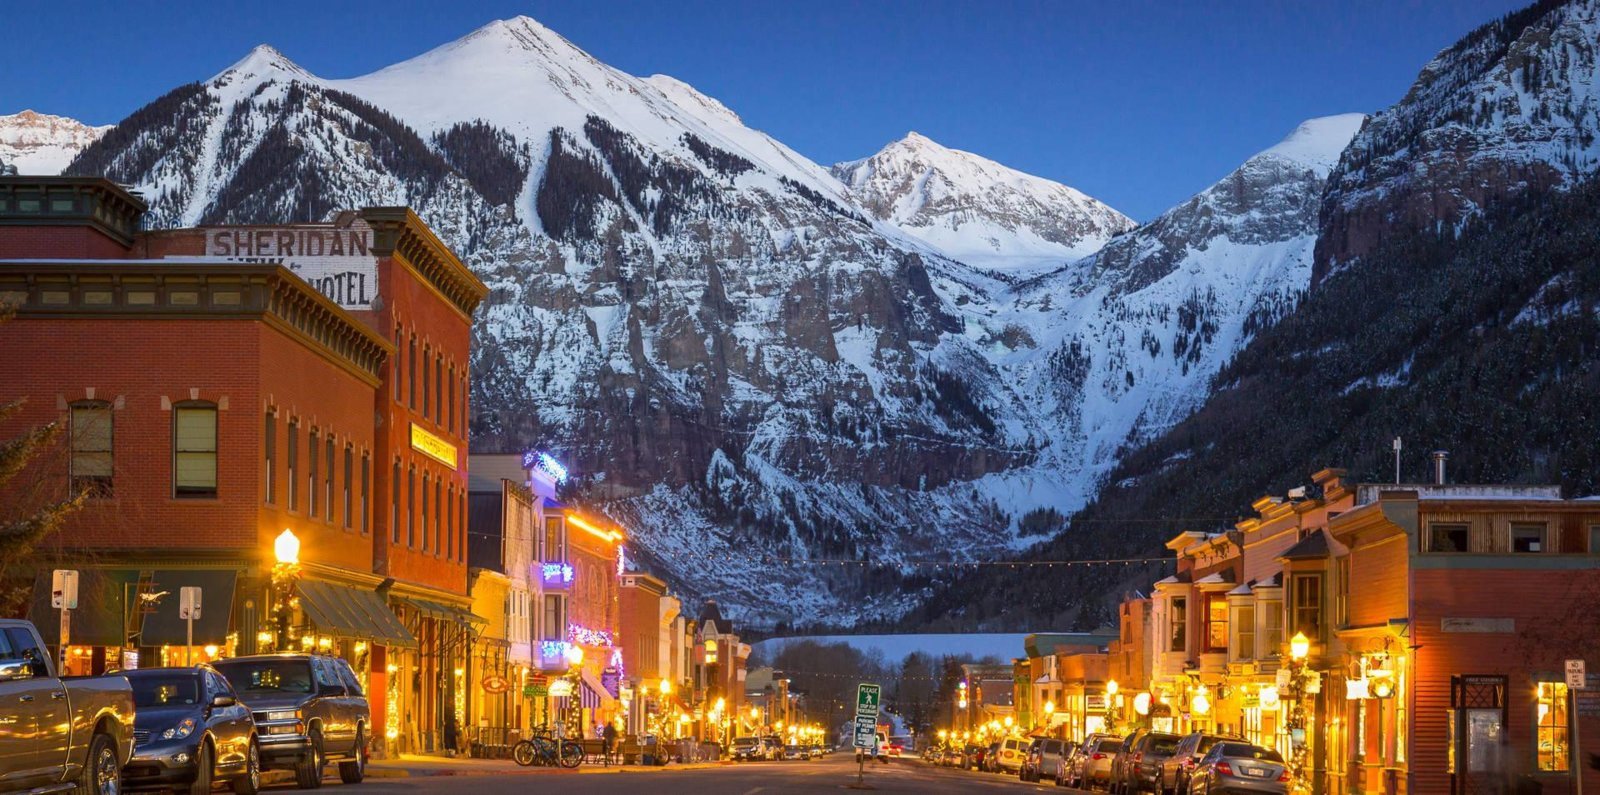 Downtown Ouray at night.jpg